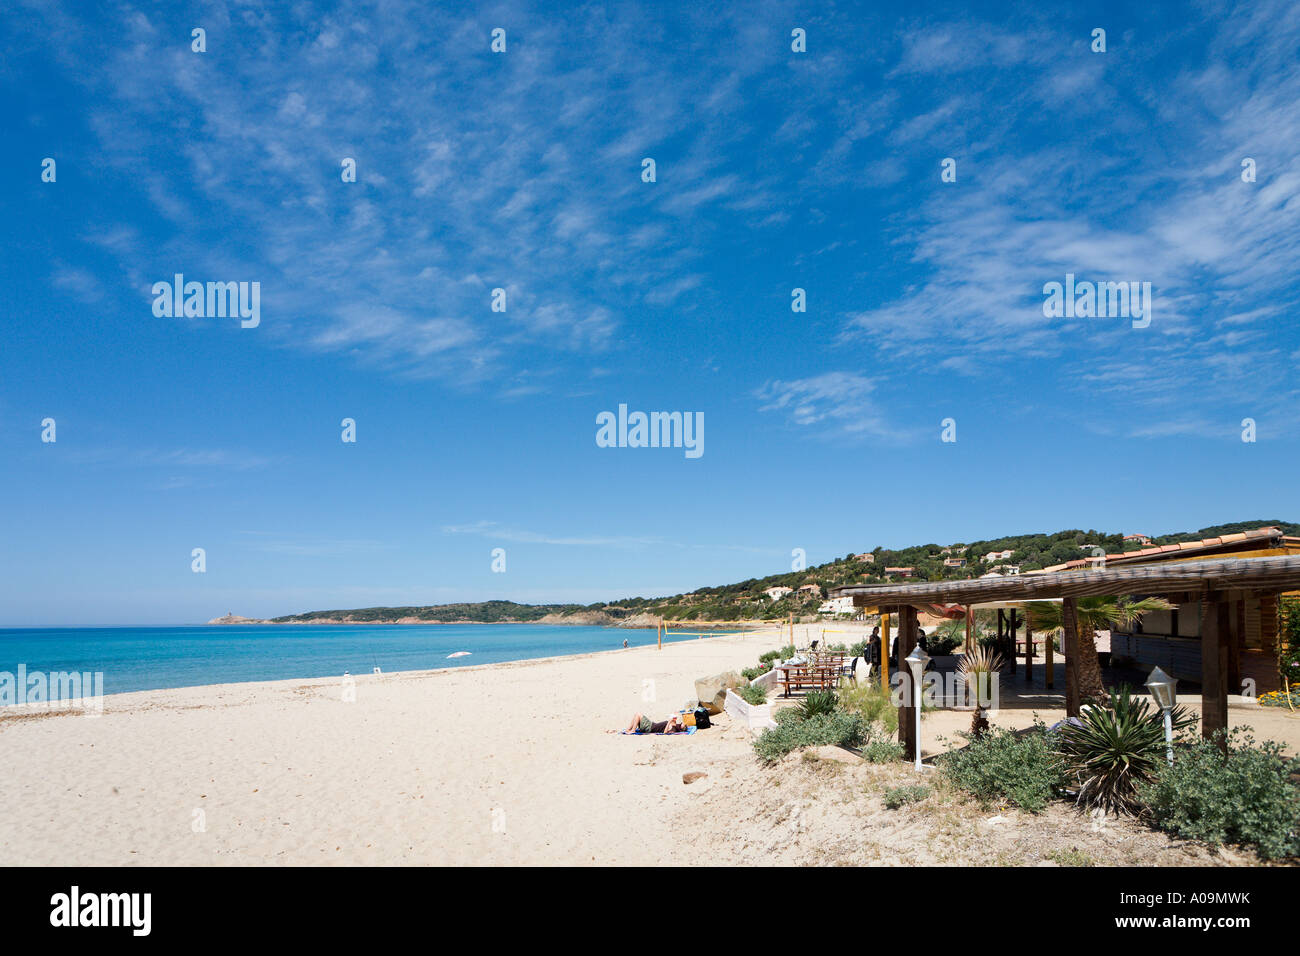 Beach bar and cafe, Cargese, Corsica, France - Stock Image